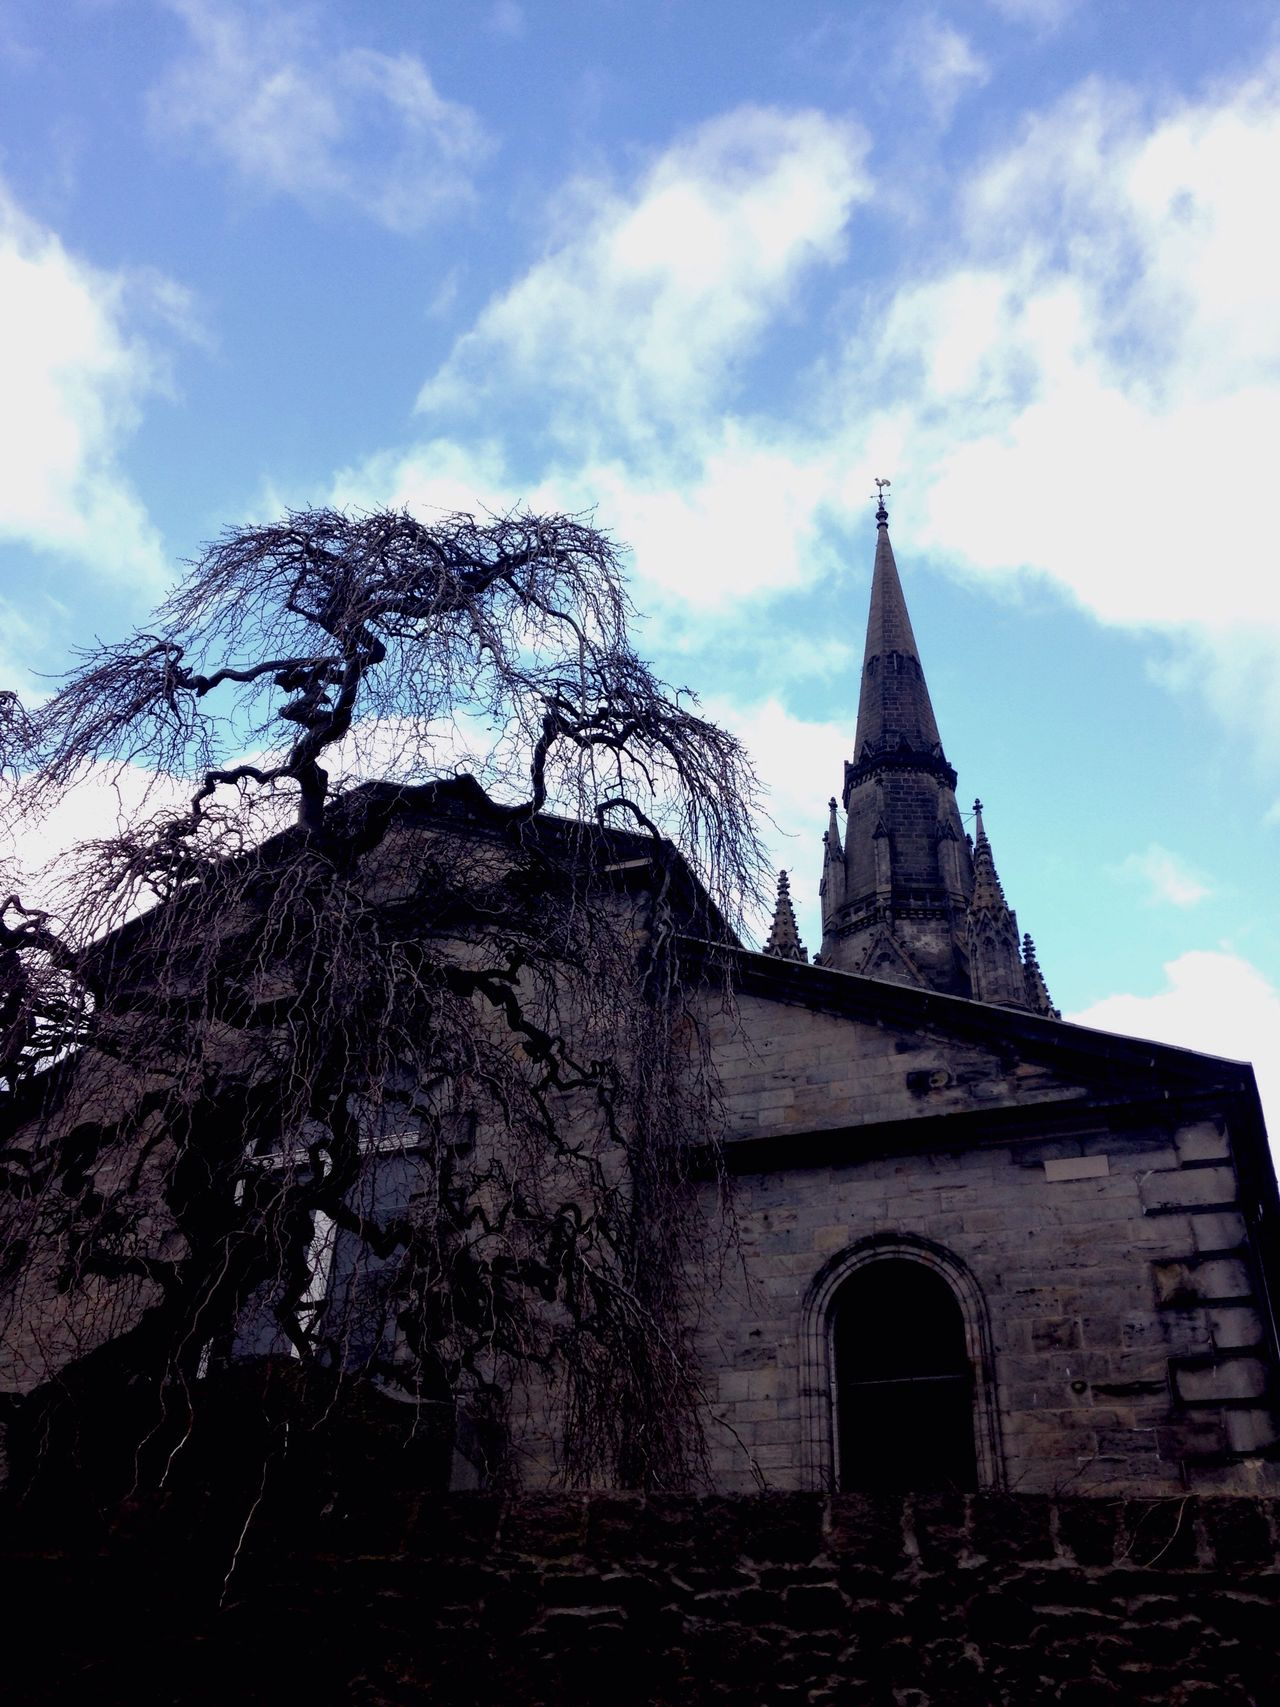 Learn & Shoot: Balancing Elements Church Witches Fingers Blue Sky Blackandblue Tree Branches Tree